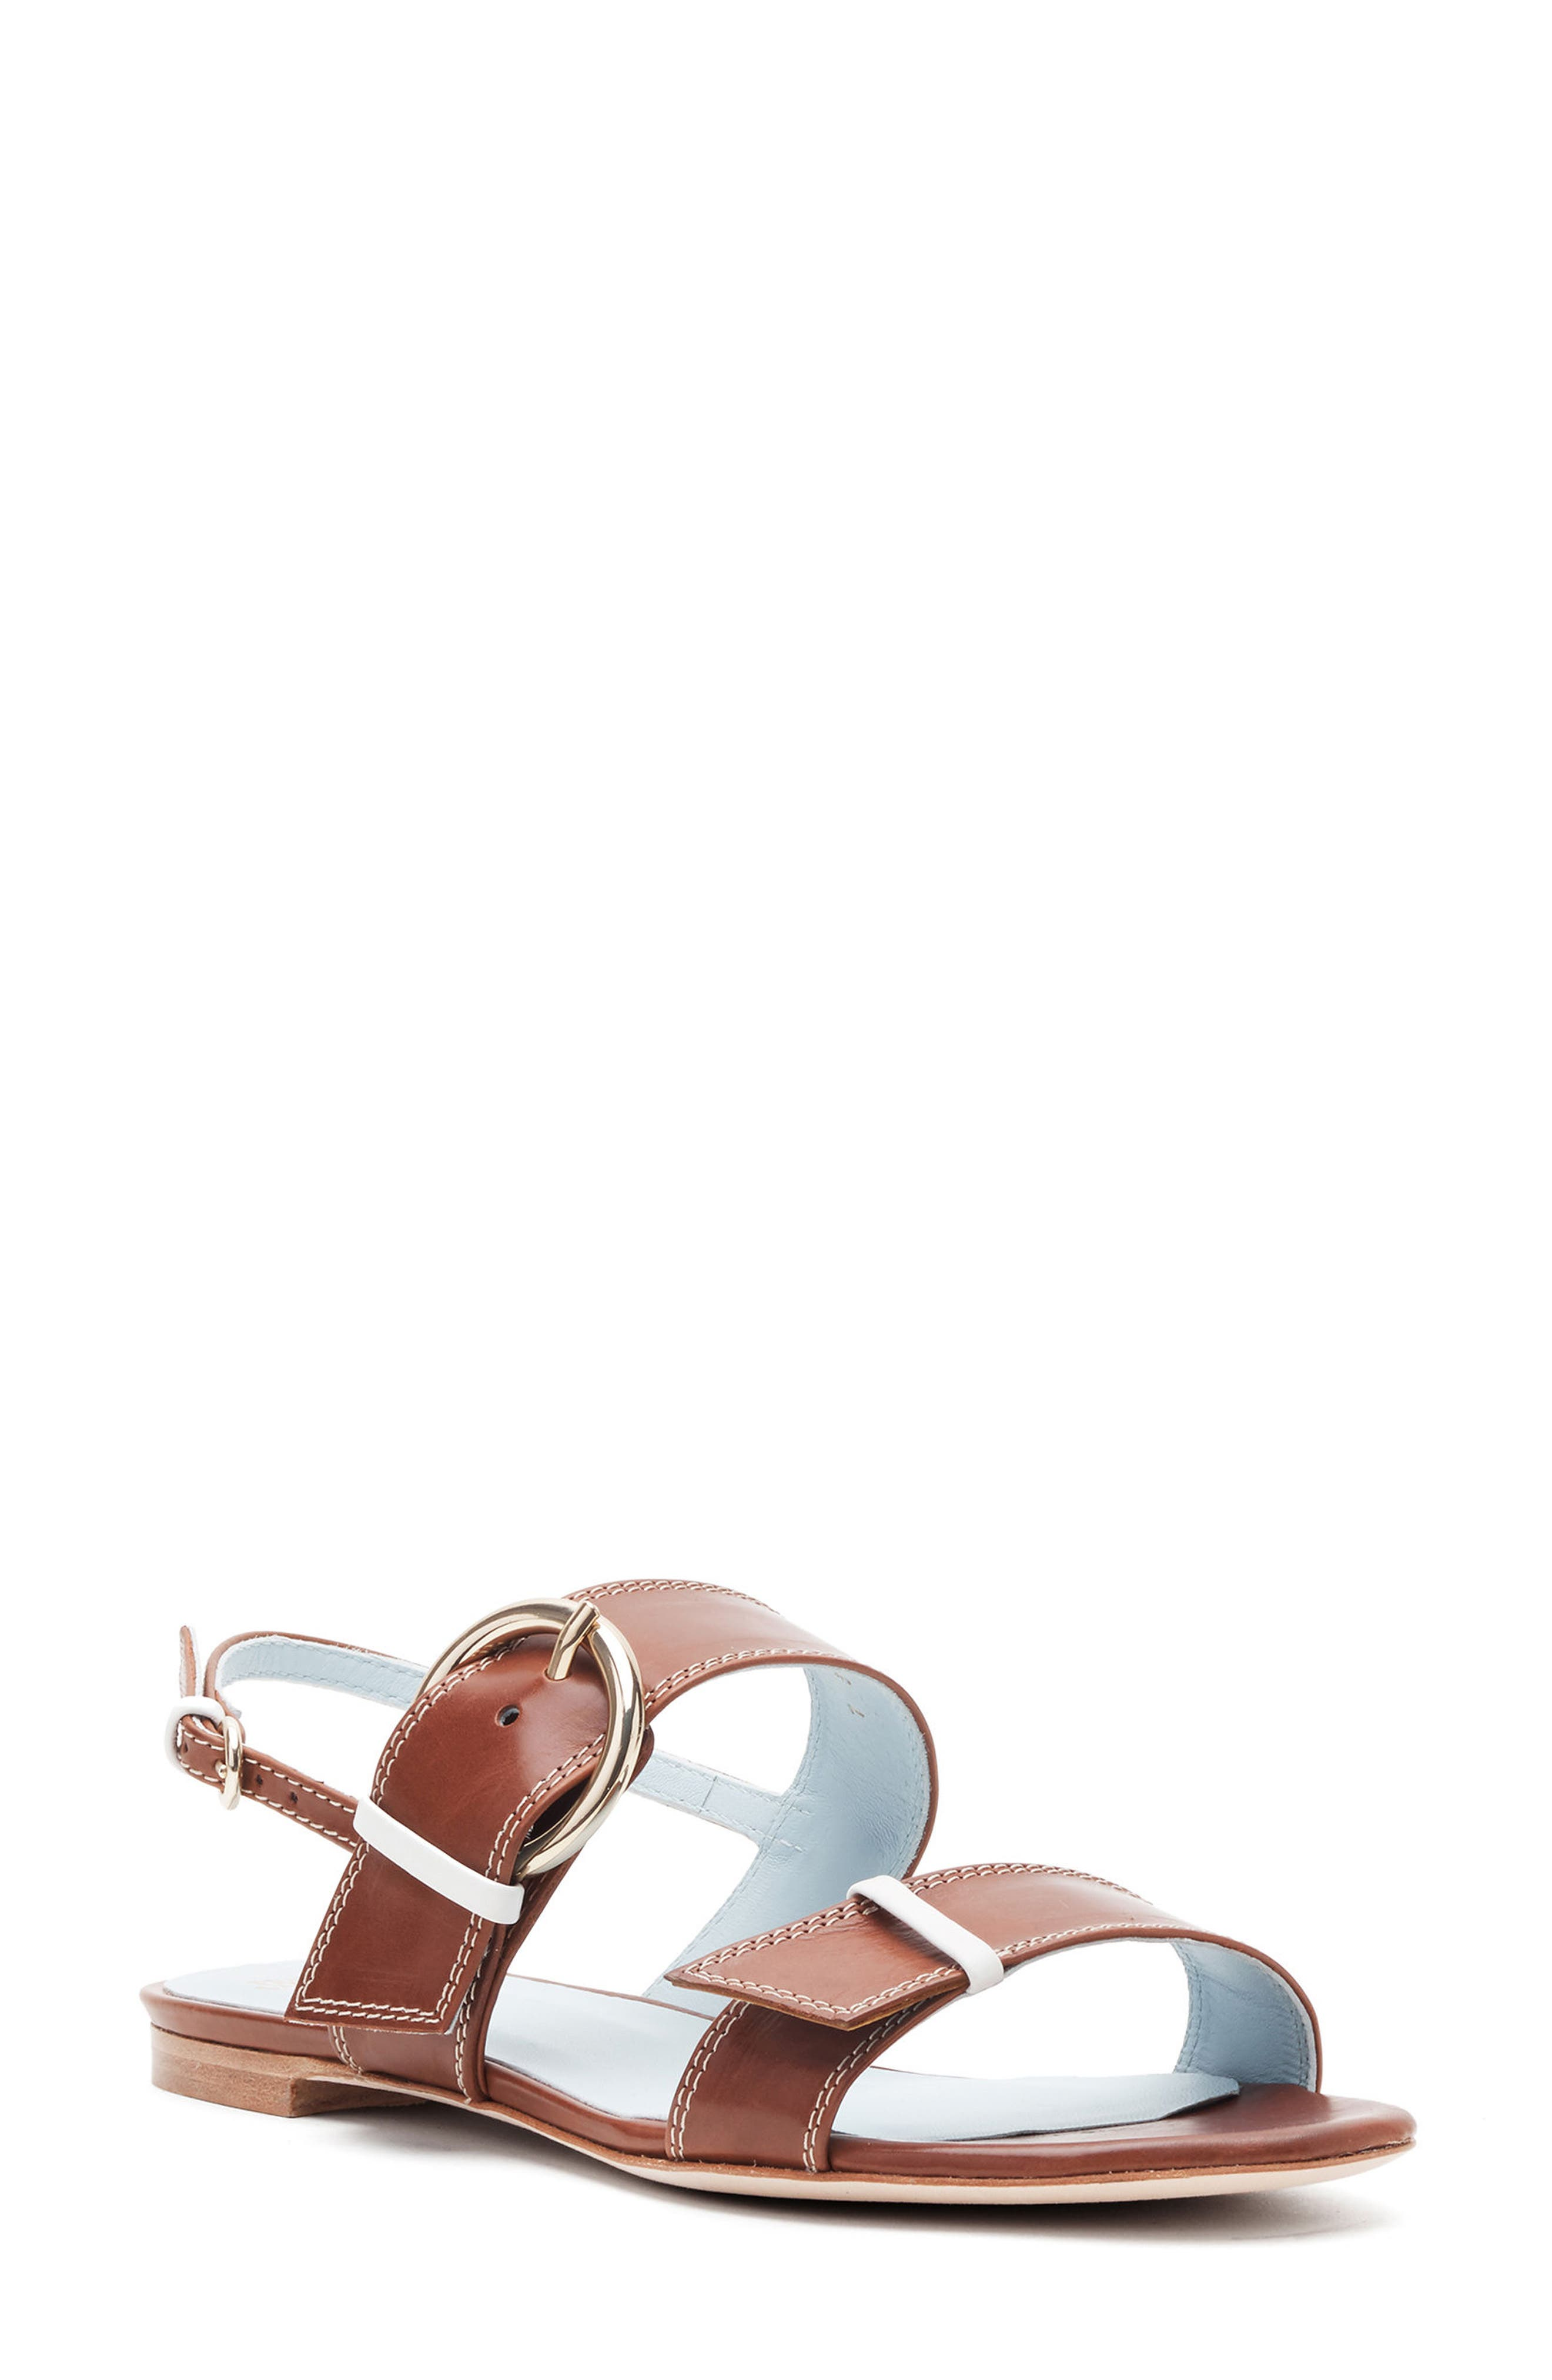 FRANCES VALENTINE Faith Sandal